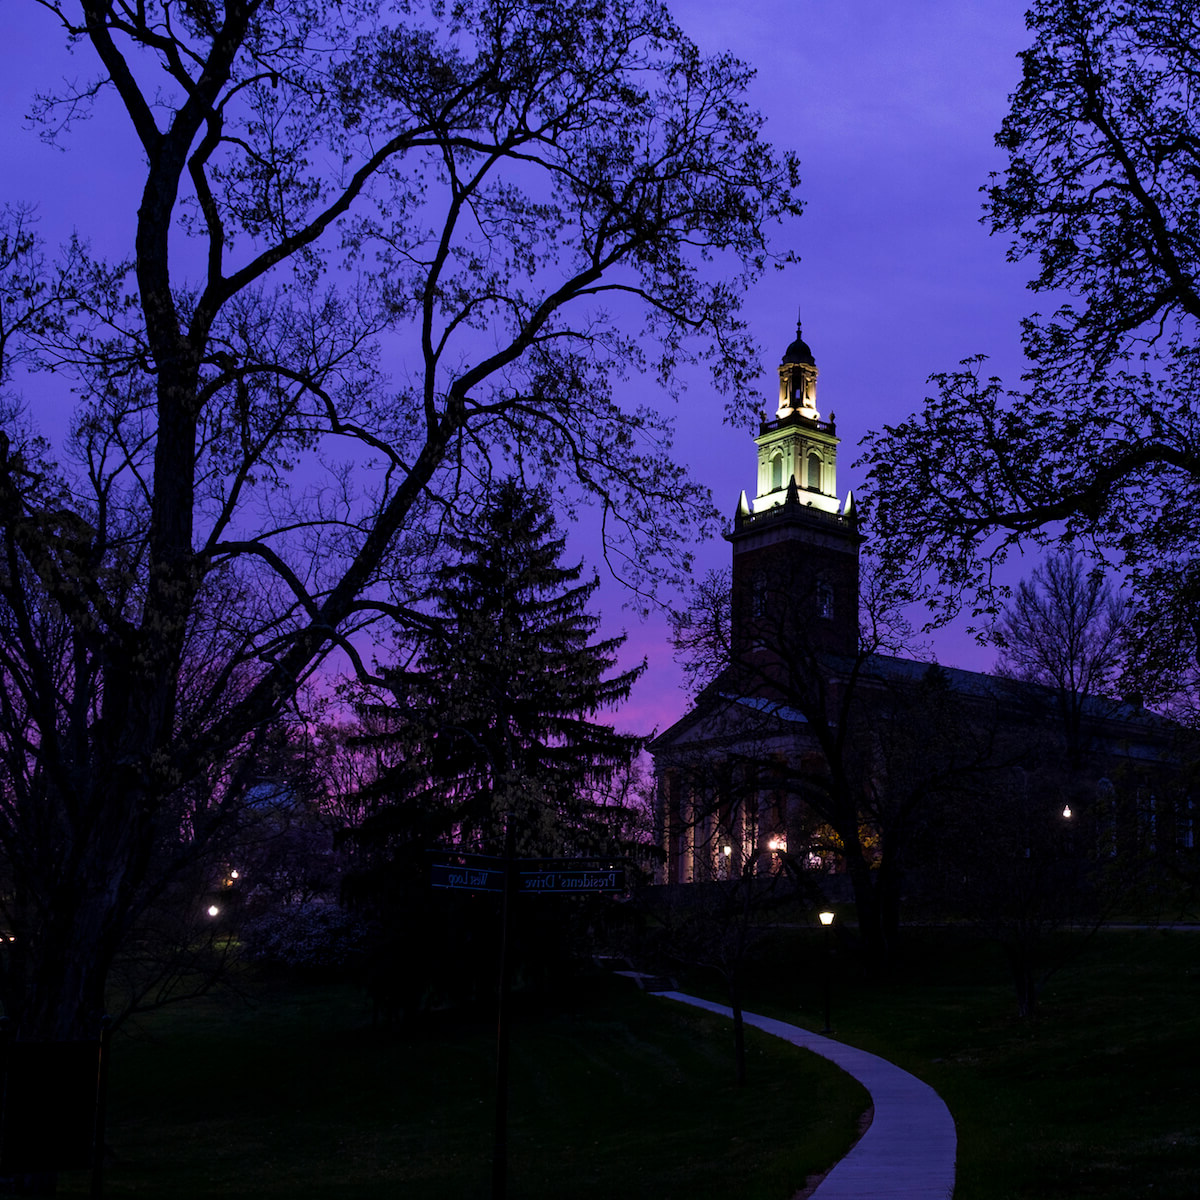 Swasey Chapel at dusk